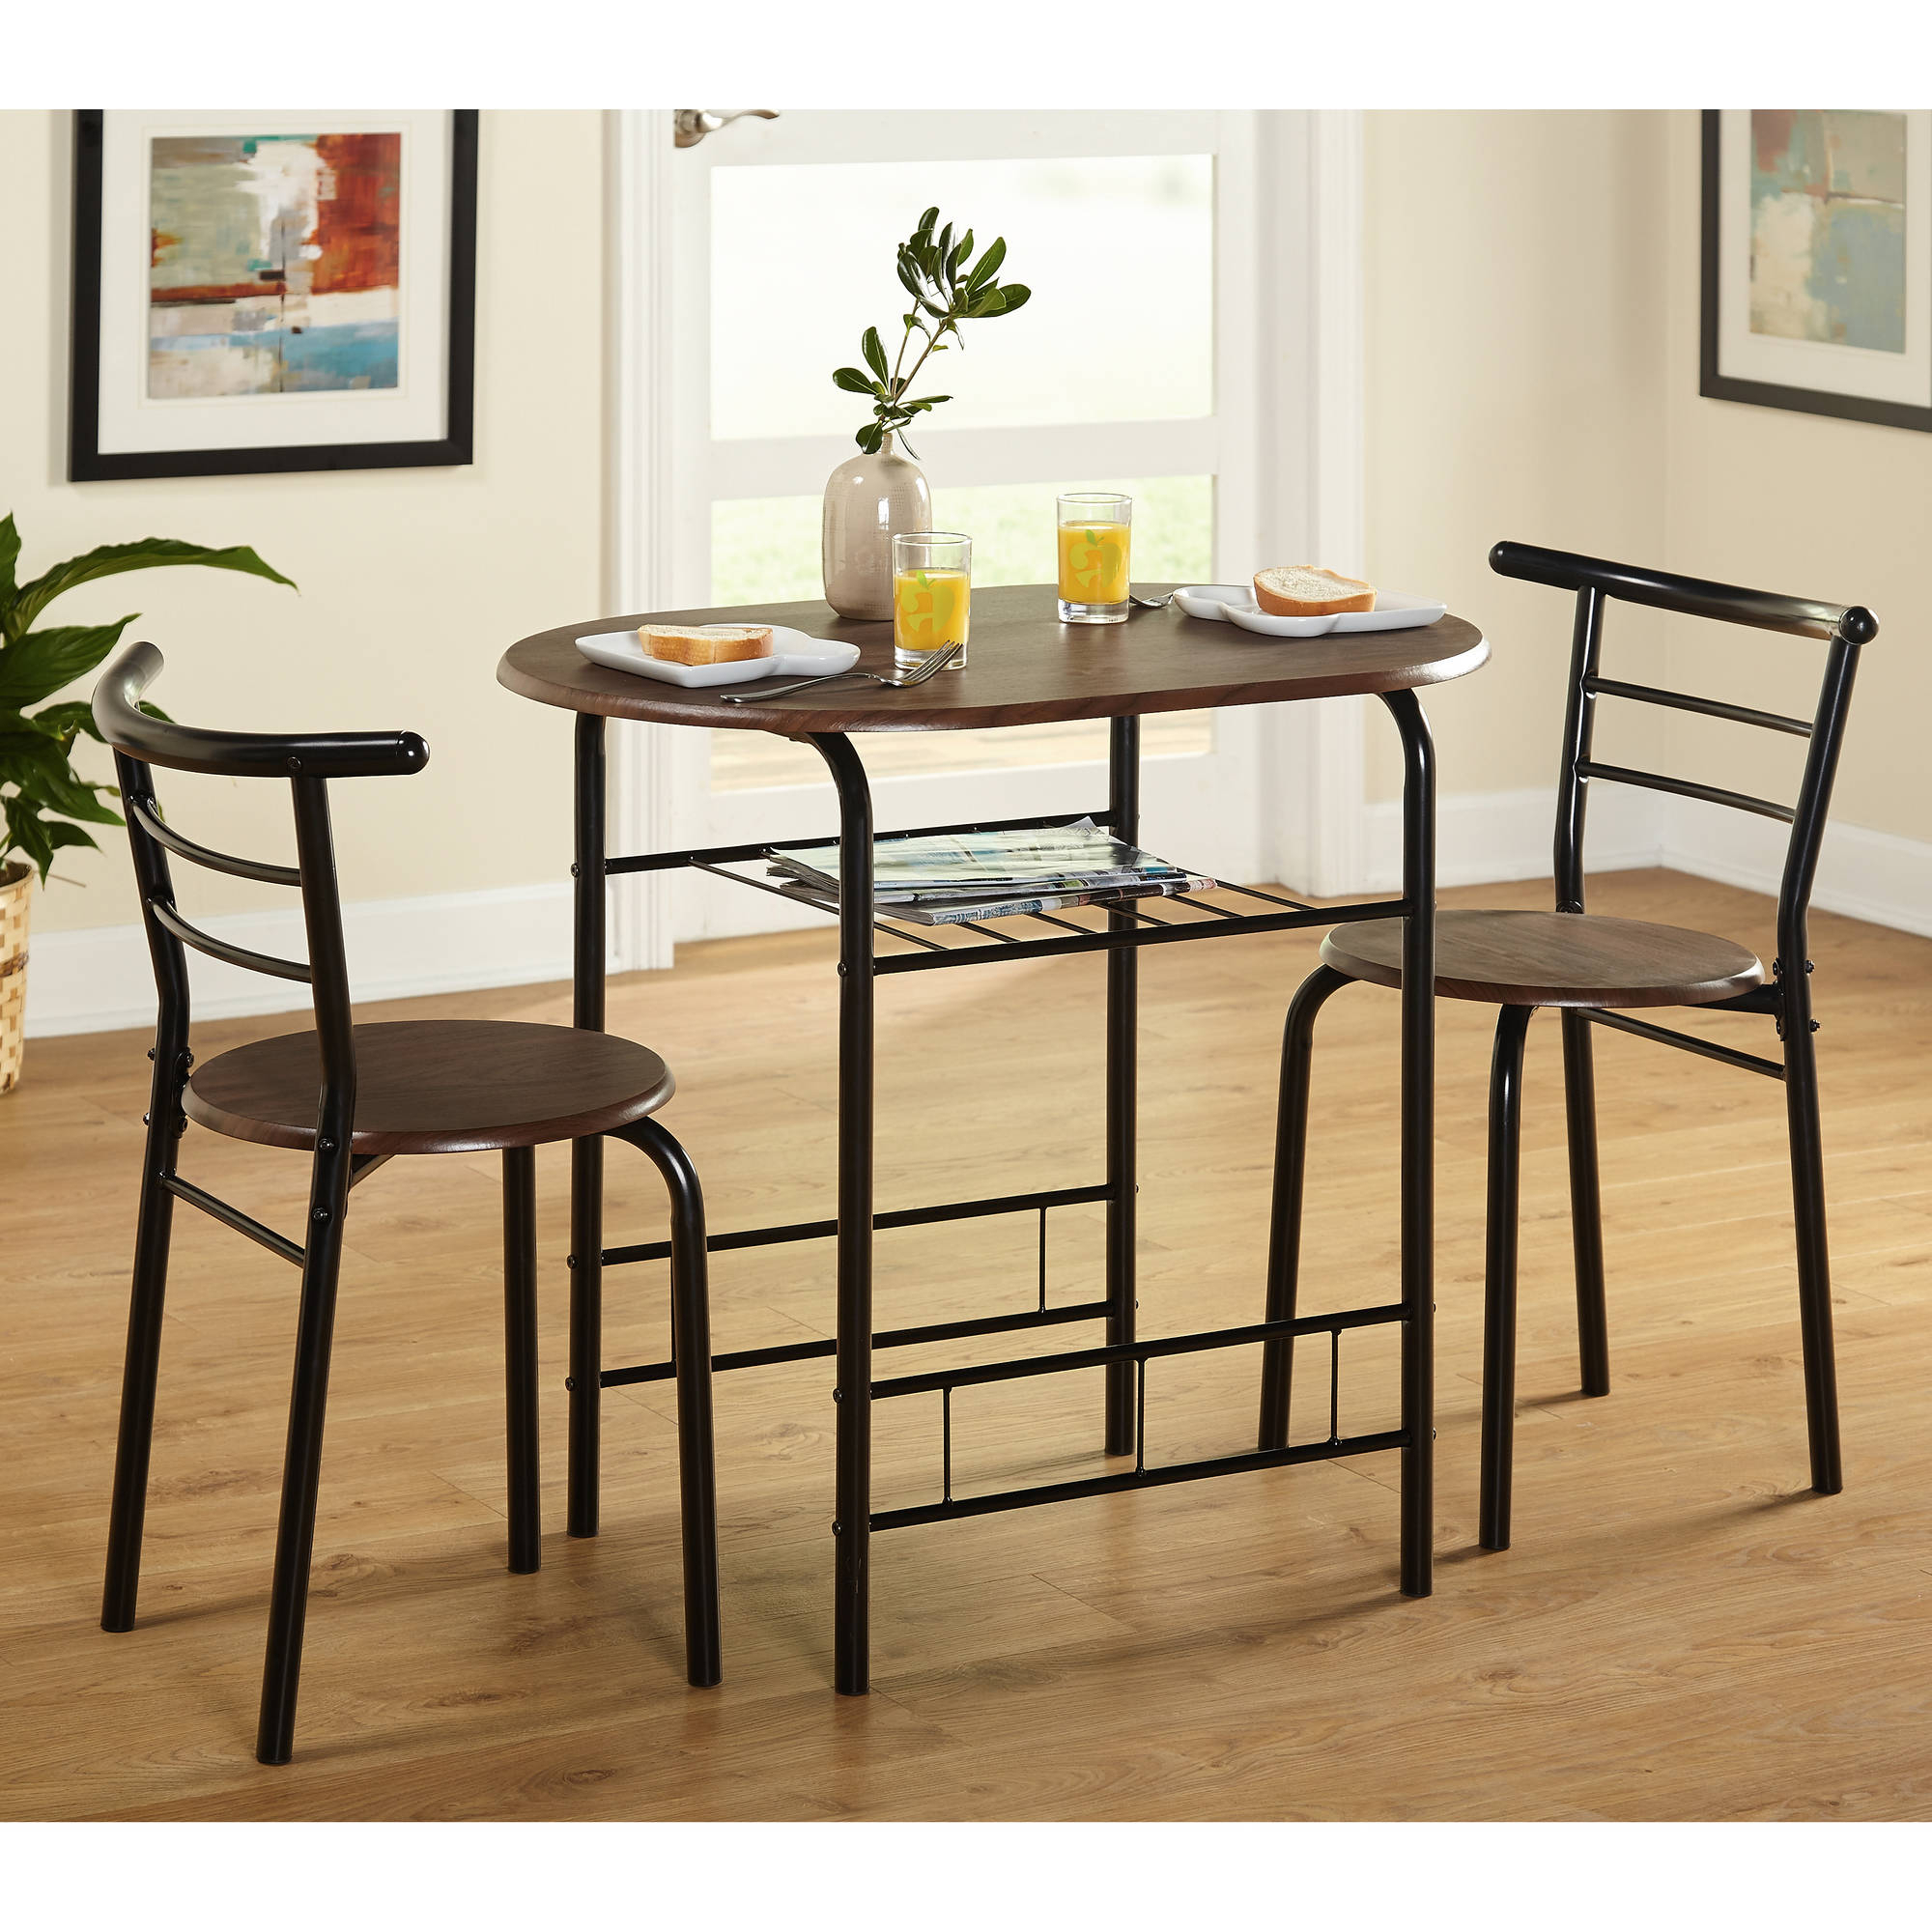 Tms 3 Piece Bistro Dining Set With Regard To 2017 3 Piece Breakfast Dining Sets (Photo 5 of 20)